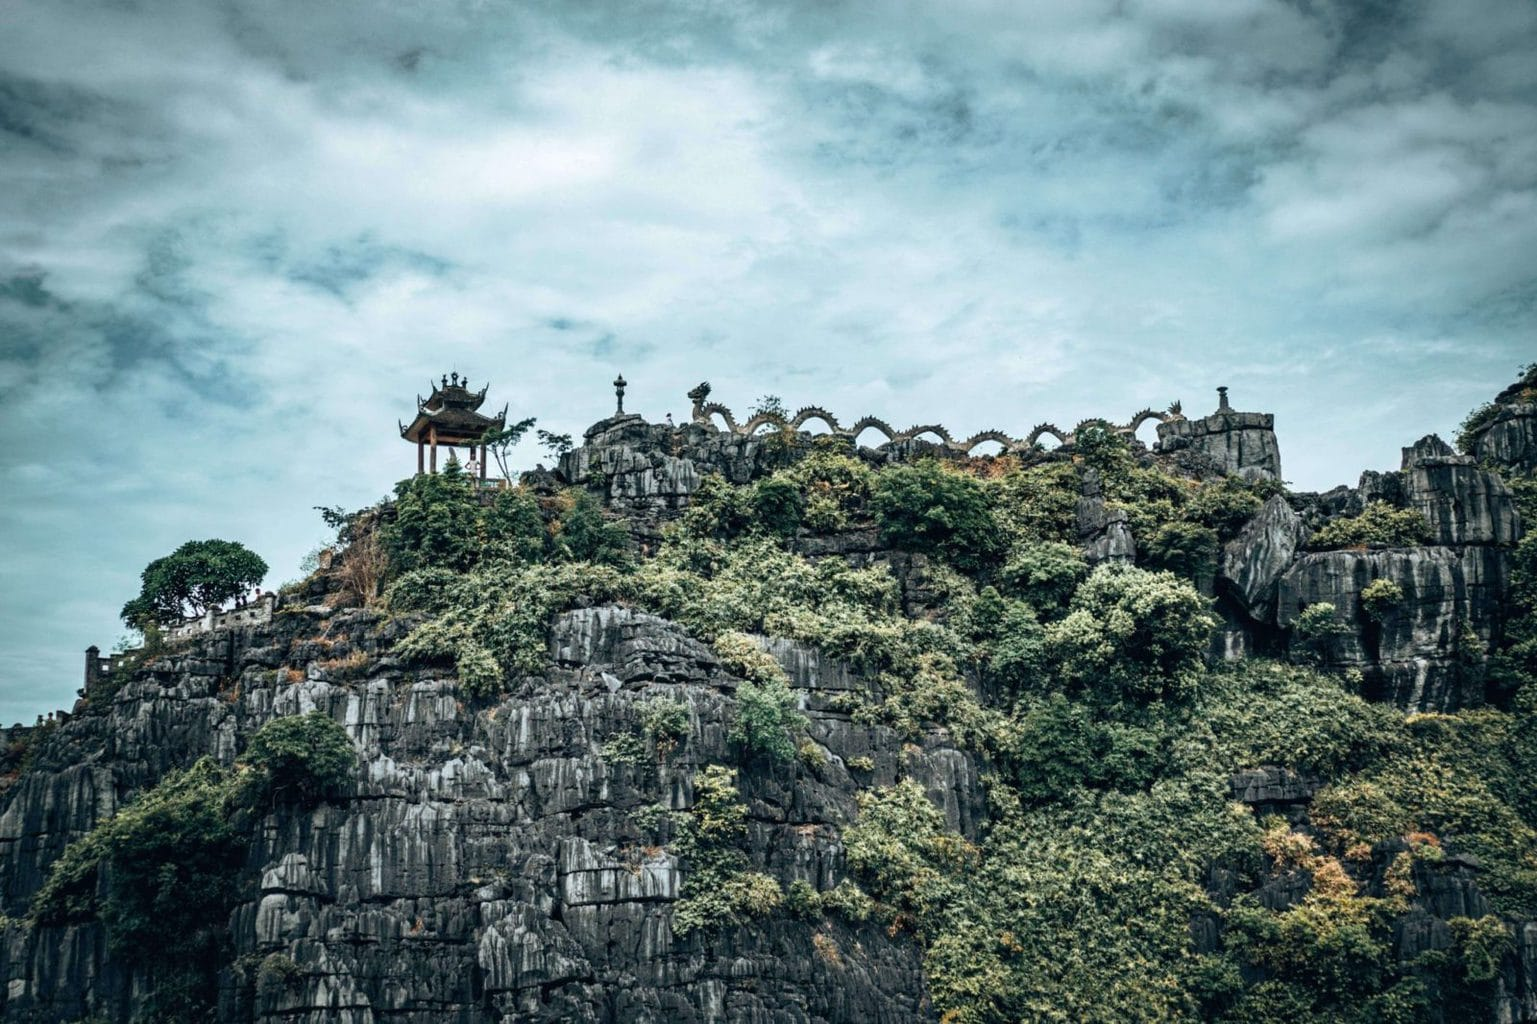 Picture of the Hang Mua mountain in Tam Coc, Vietnam